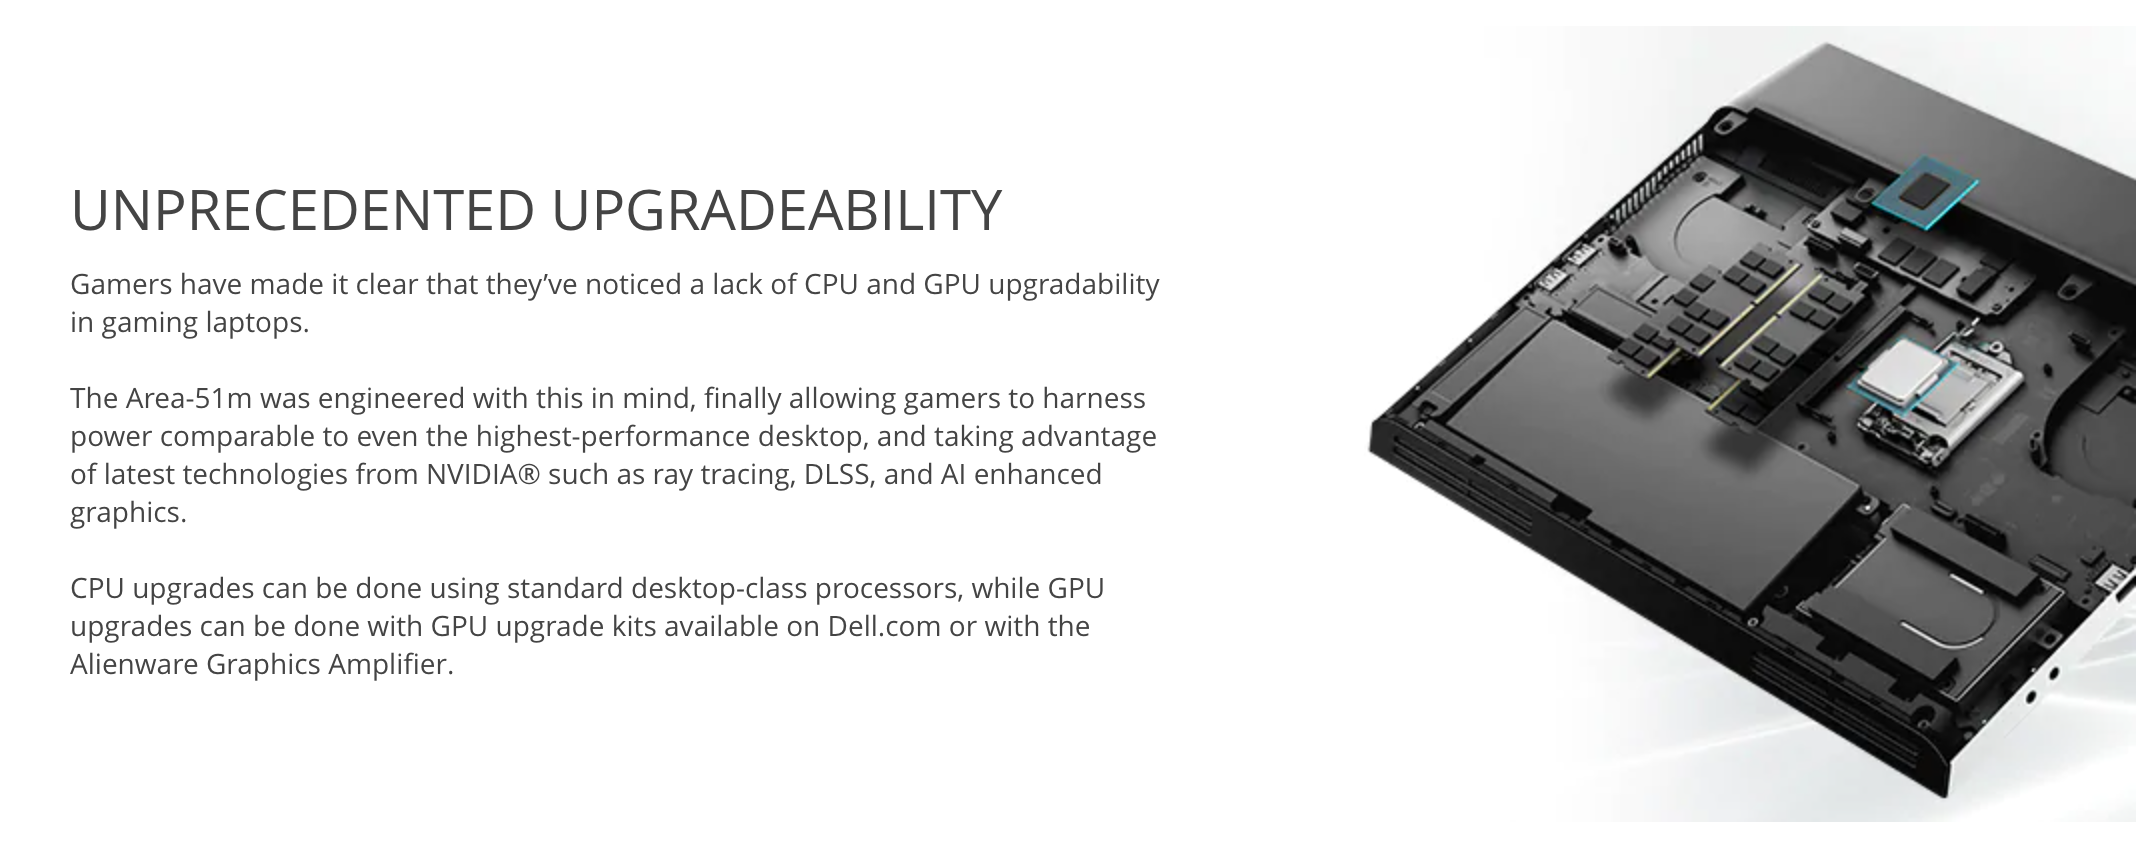 Dell upgradeability advertisement